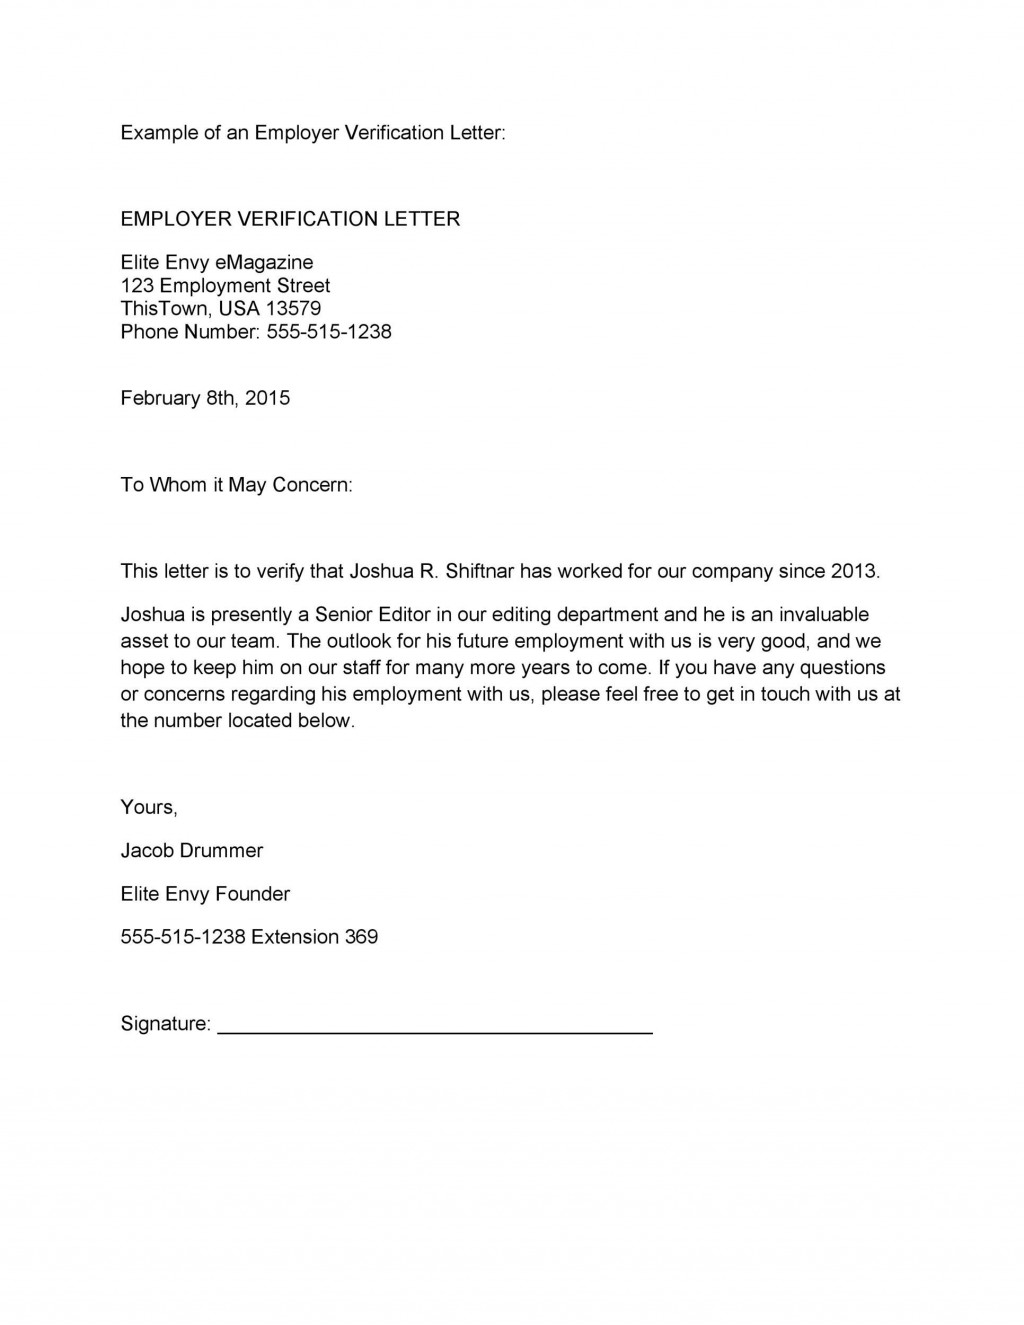 007 Magnificent Employment Verification Letter Template Word Idea  South AfricaLarge